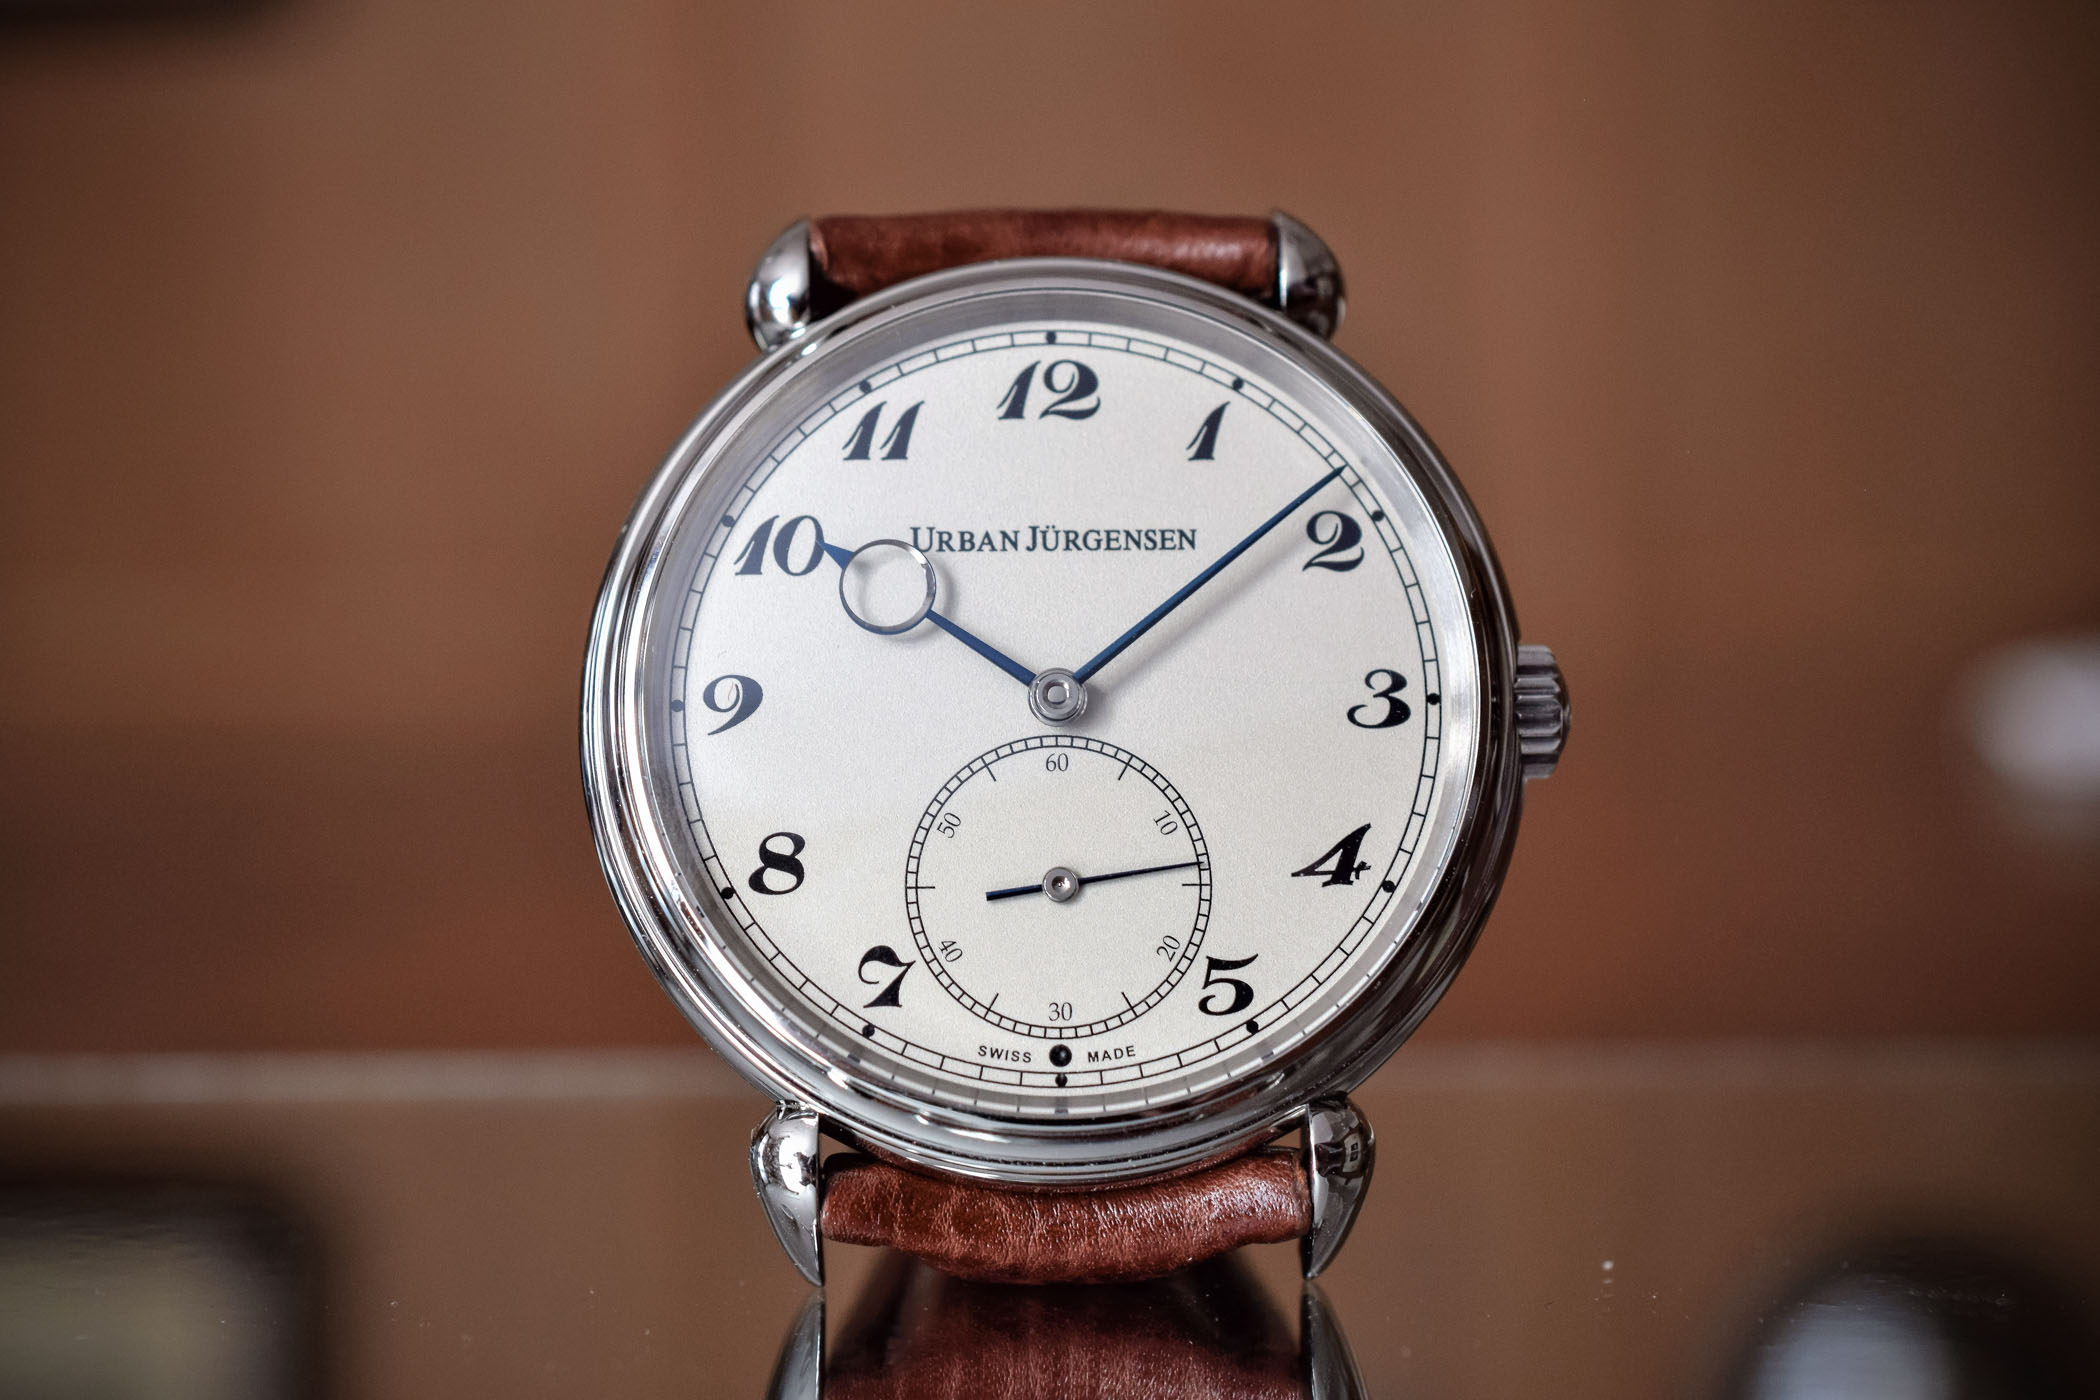 Urban Jurgensen for men